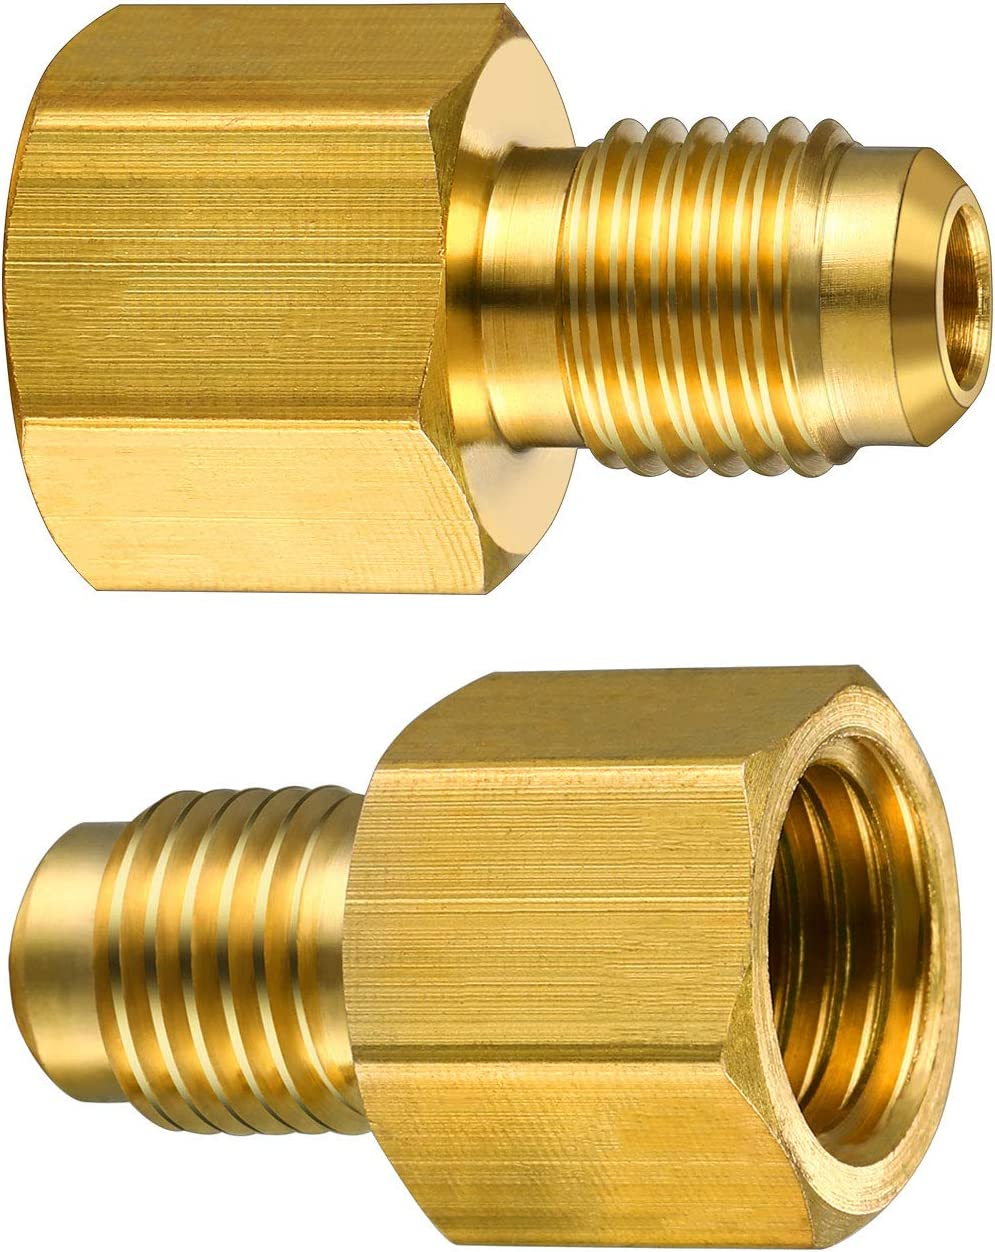 2 Pieces 6015 R134A Brass Refrigerant Tank Adapter to R12 Fitting Adapter 1//2 Female Acme to 1//4 Male Flare Adaptor Valve Core and 6014 Vacuum Pump Adapter 1//4 Inch Flare Female to 1//2 Inch Acme Male